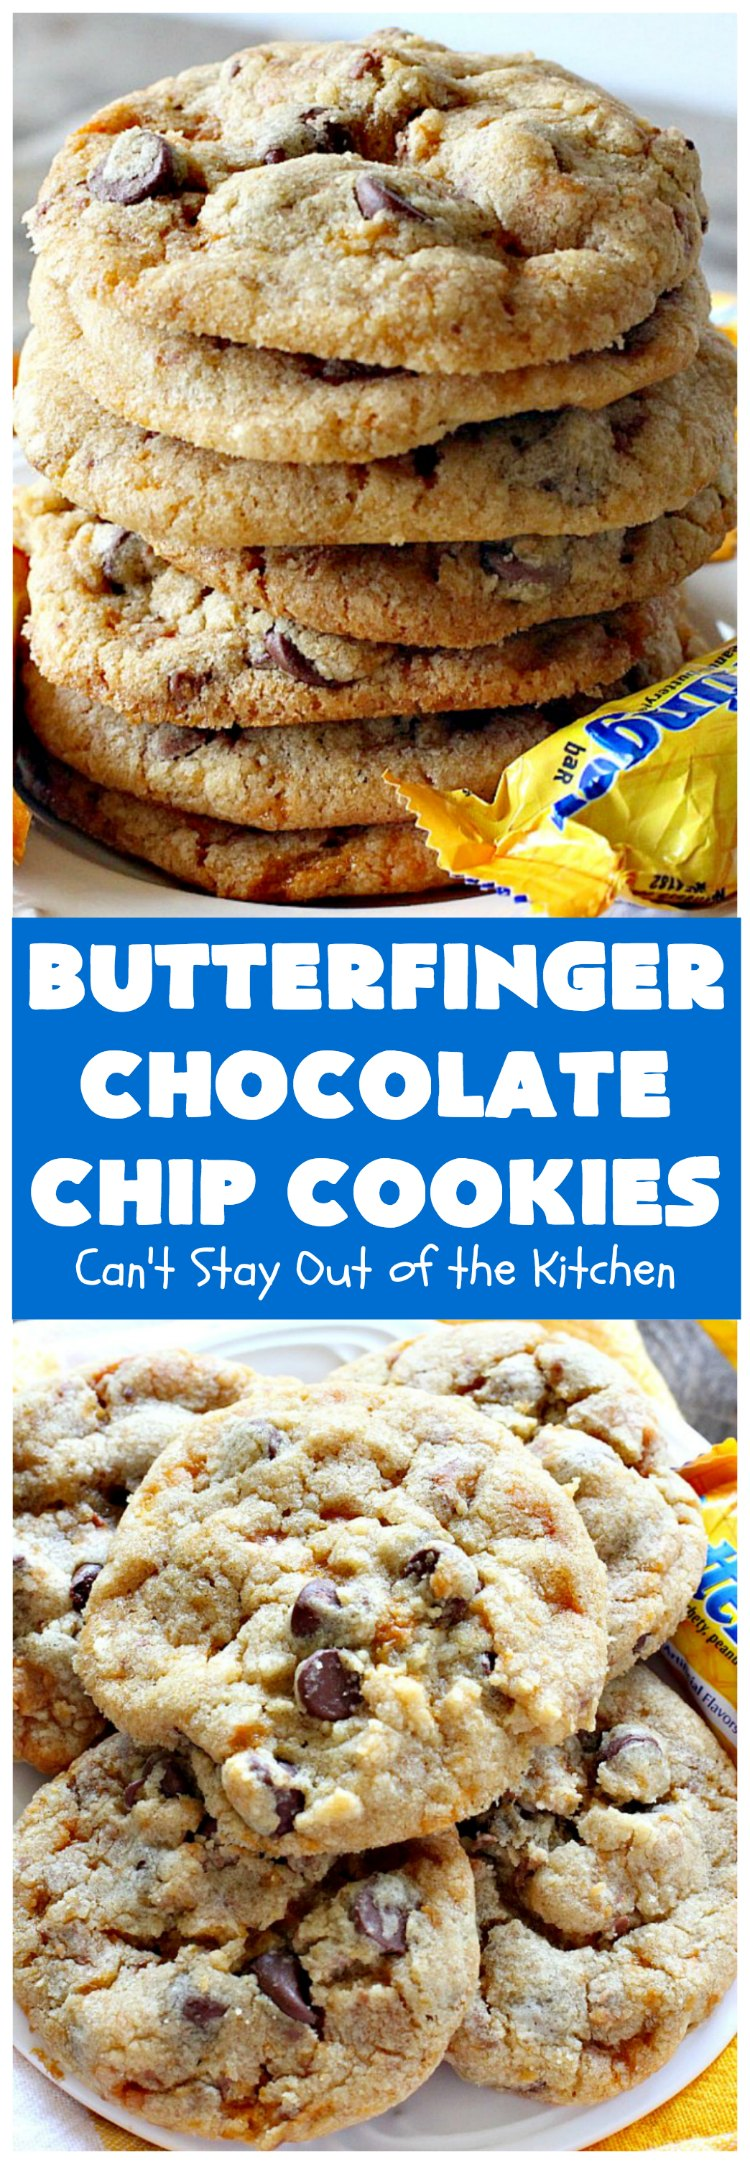 Butterfinger Chocolate Chip Cookies | Can't Stay Out of the Kitchen